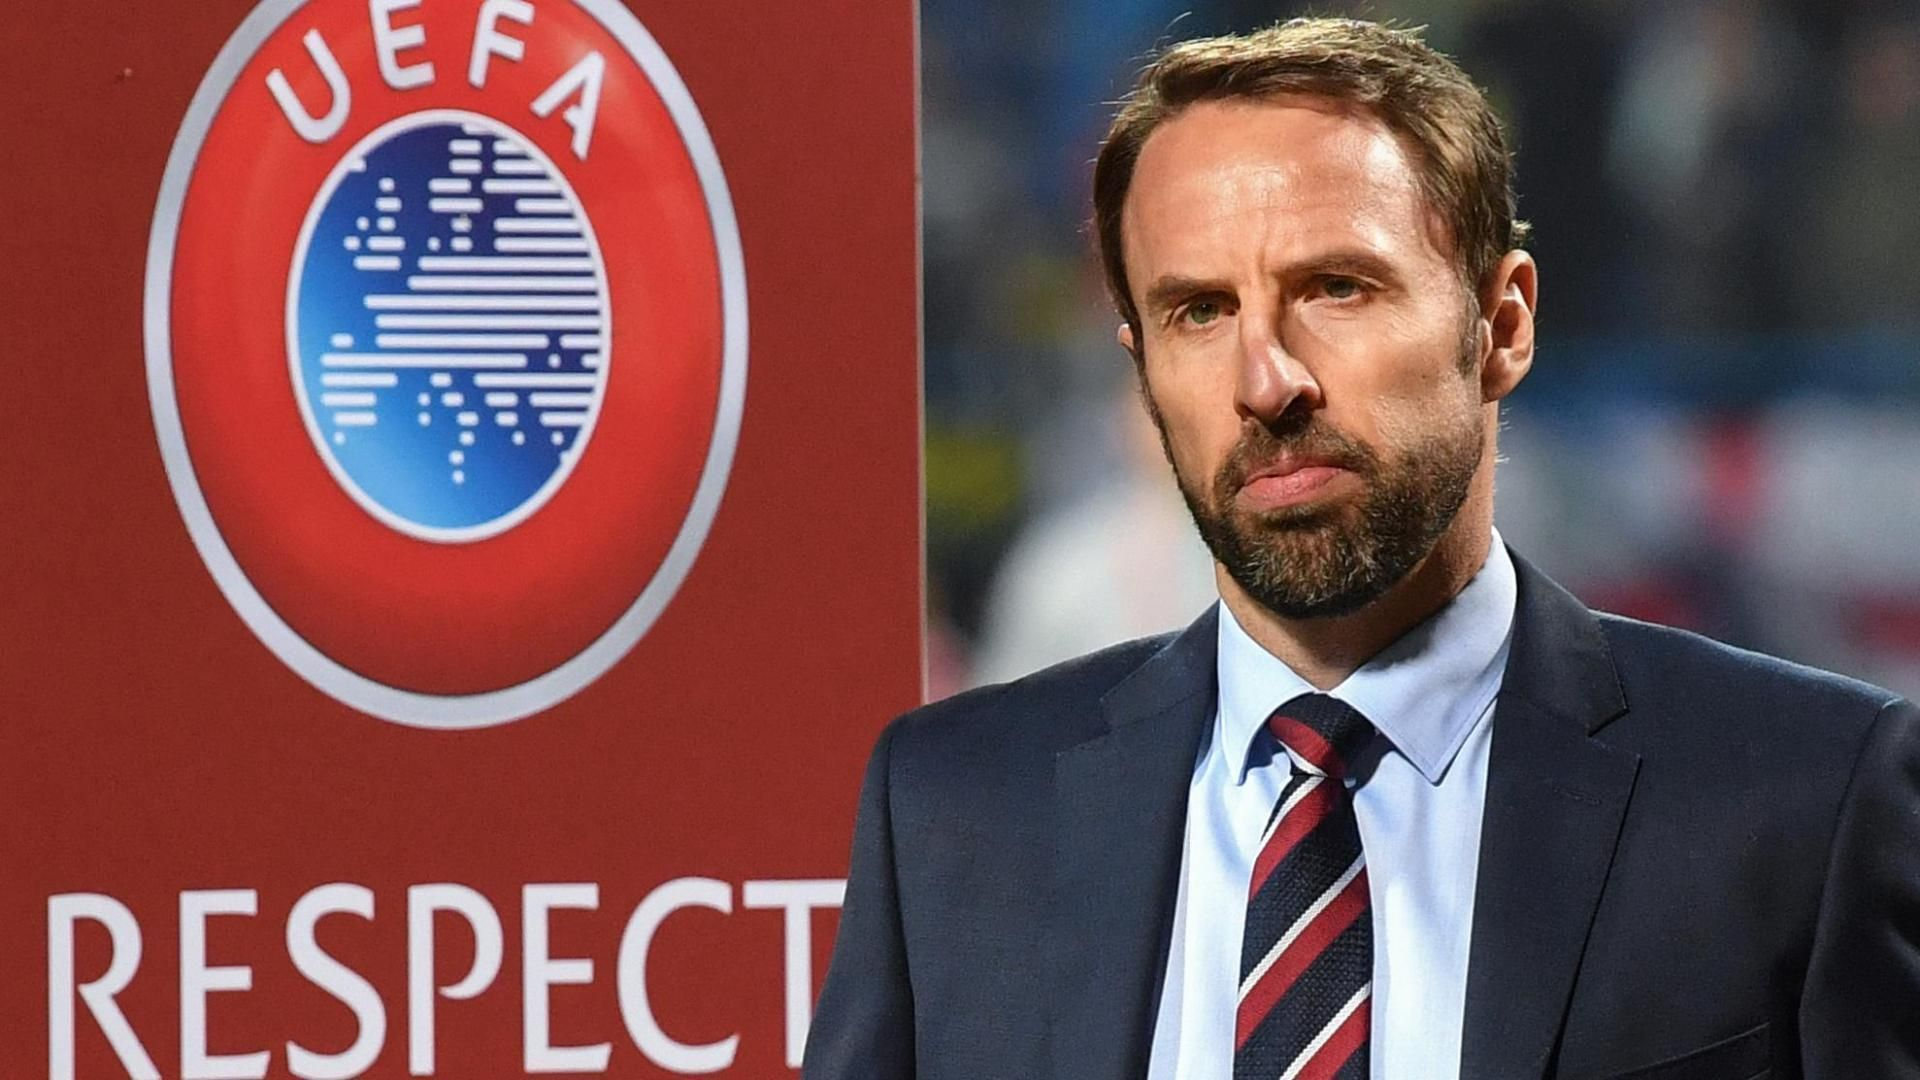 Southgate on racism: I know what I heard